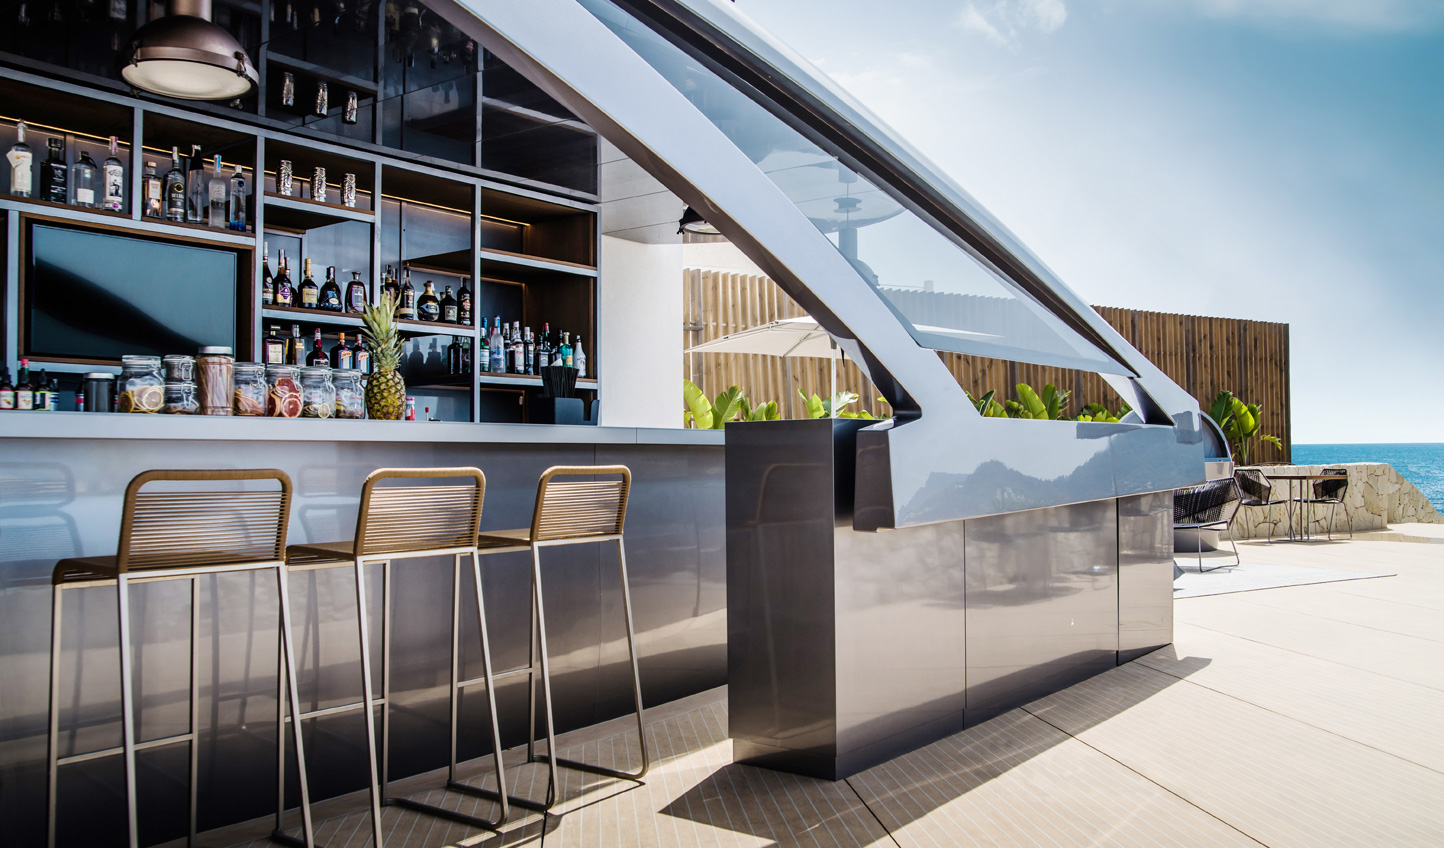 Sip on cocktails at the world's first Pershing designed bar